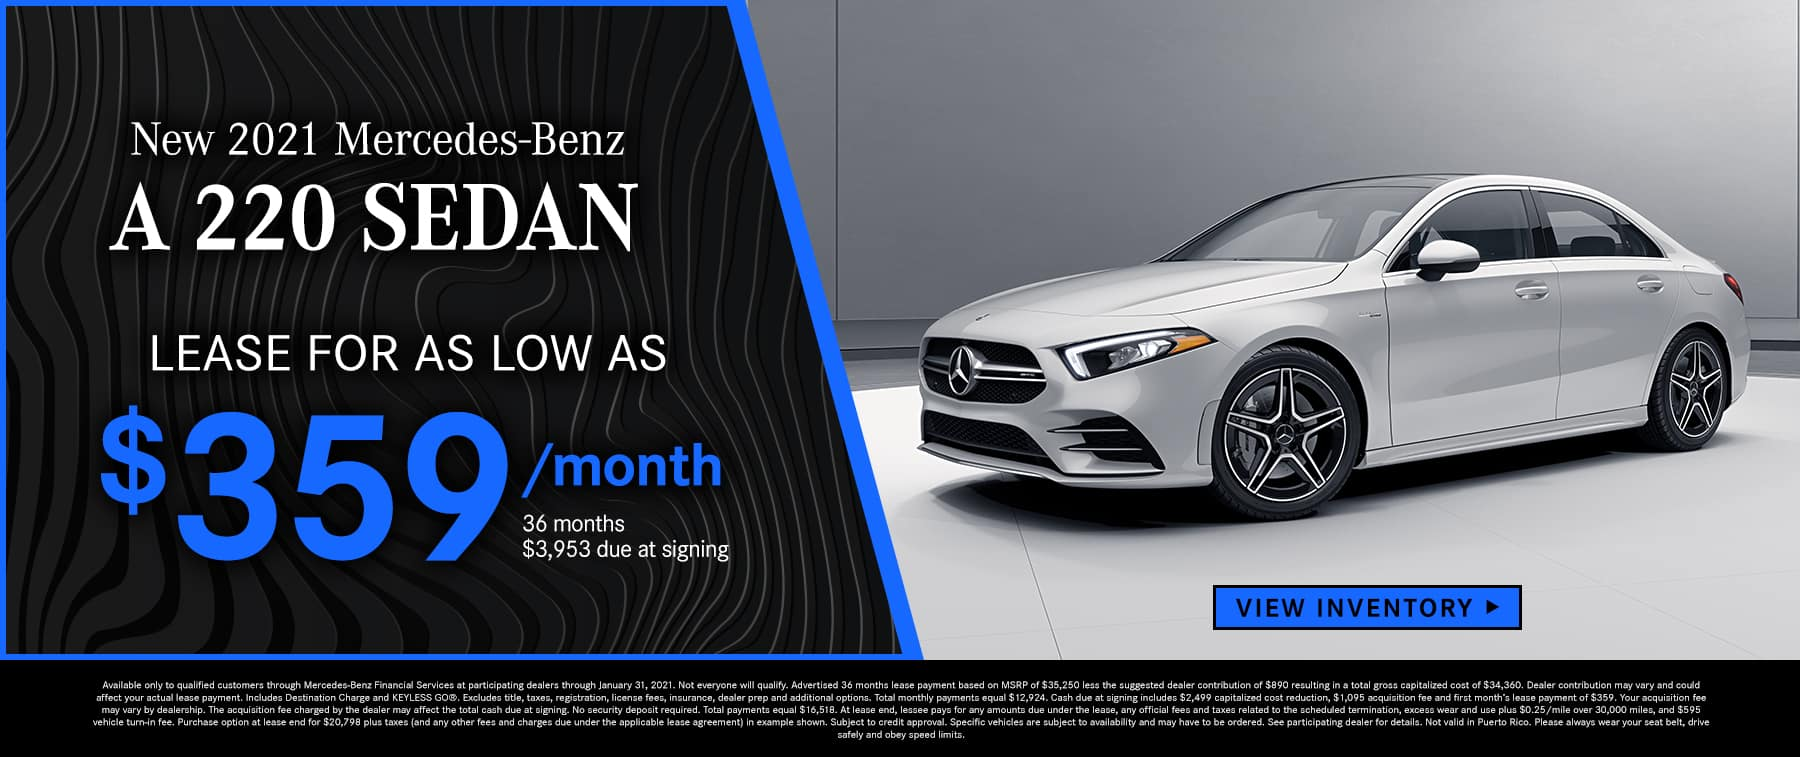 2021 A 220 Sedan Lease as low as $359 Per Month 36 Months/10k Miles $3,953 Due at Signing